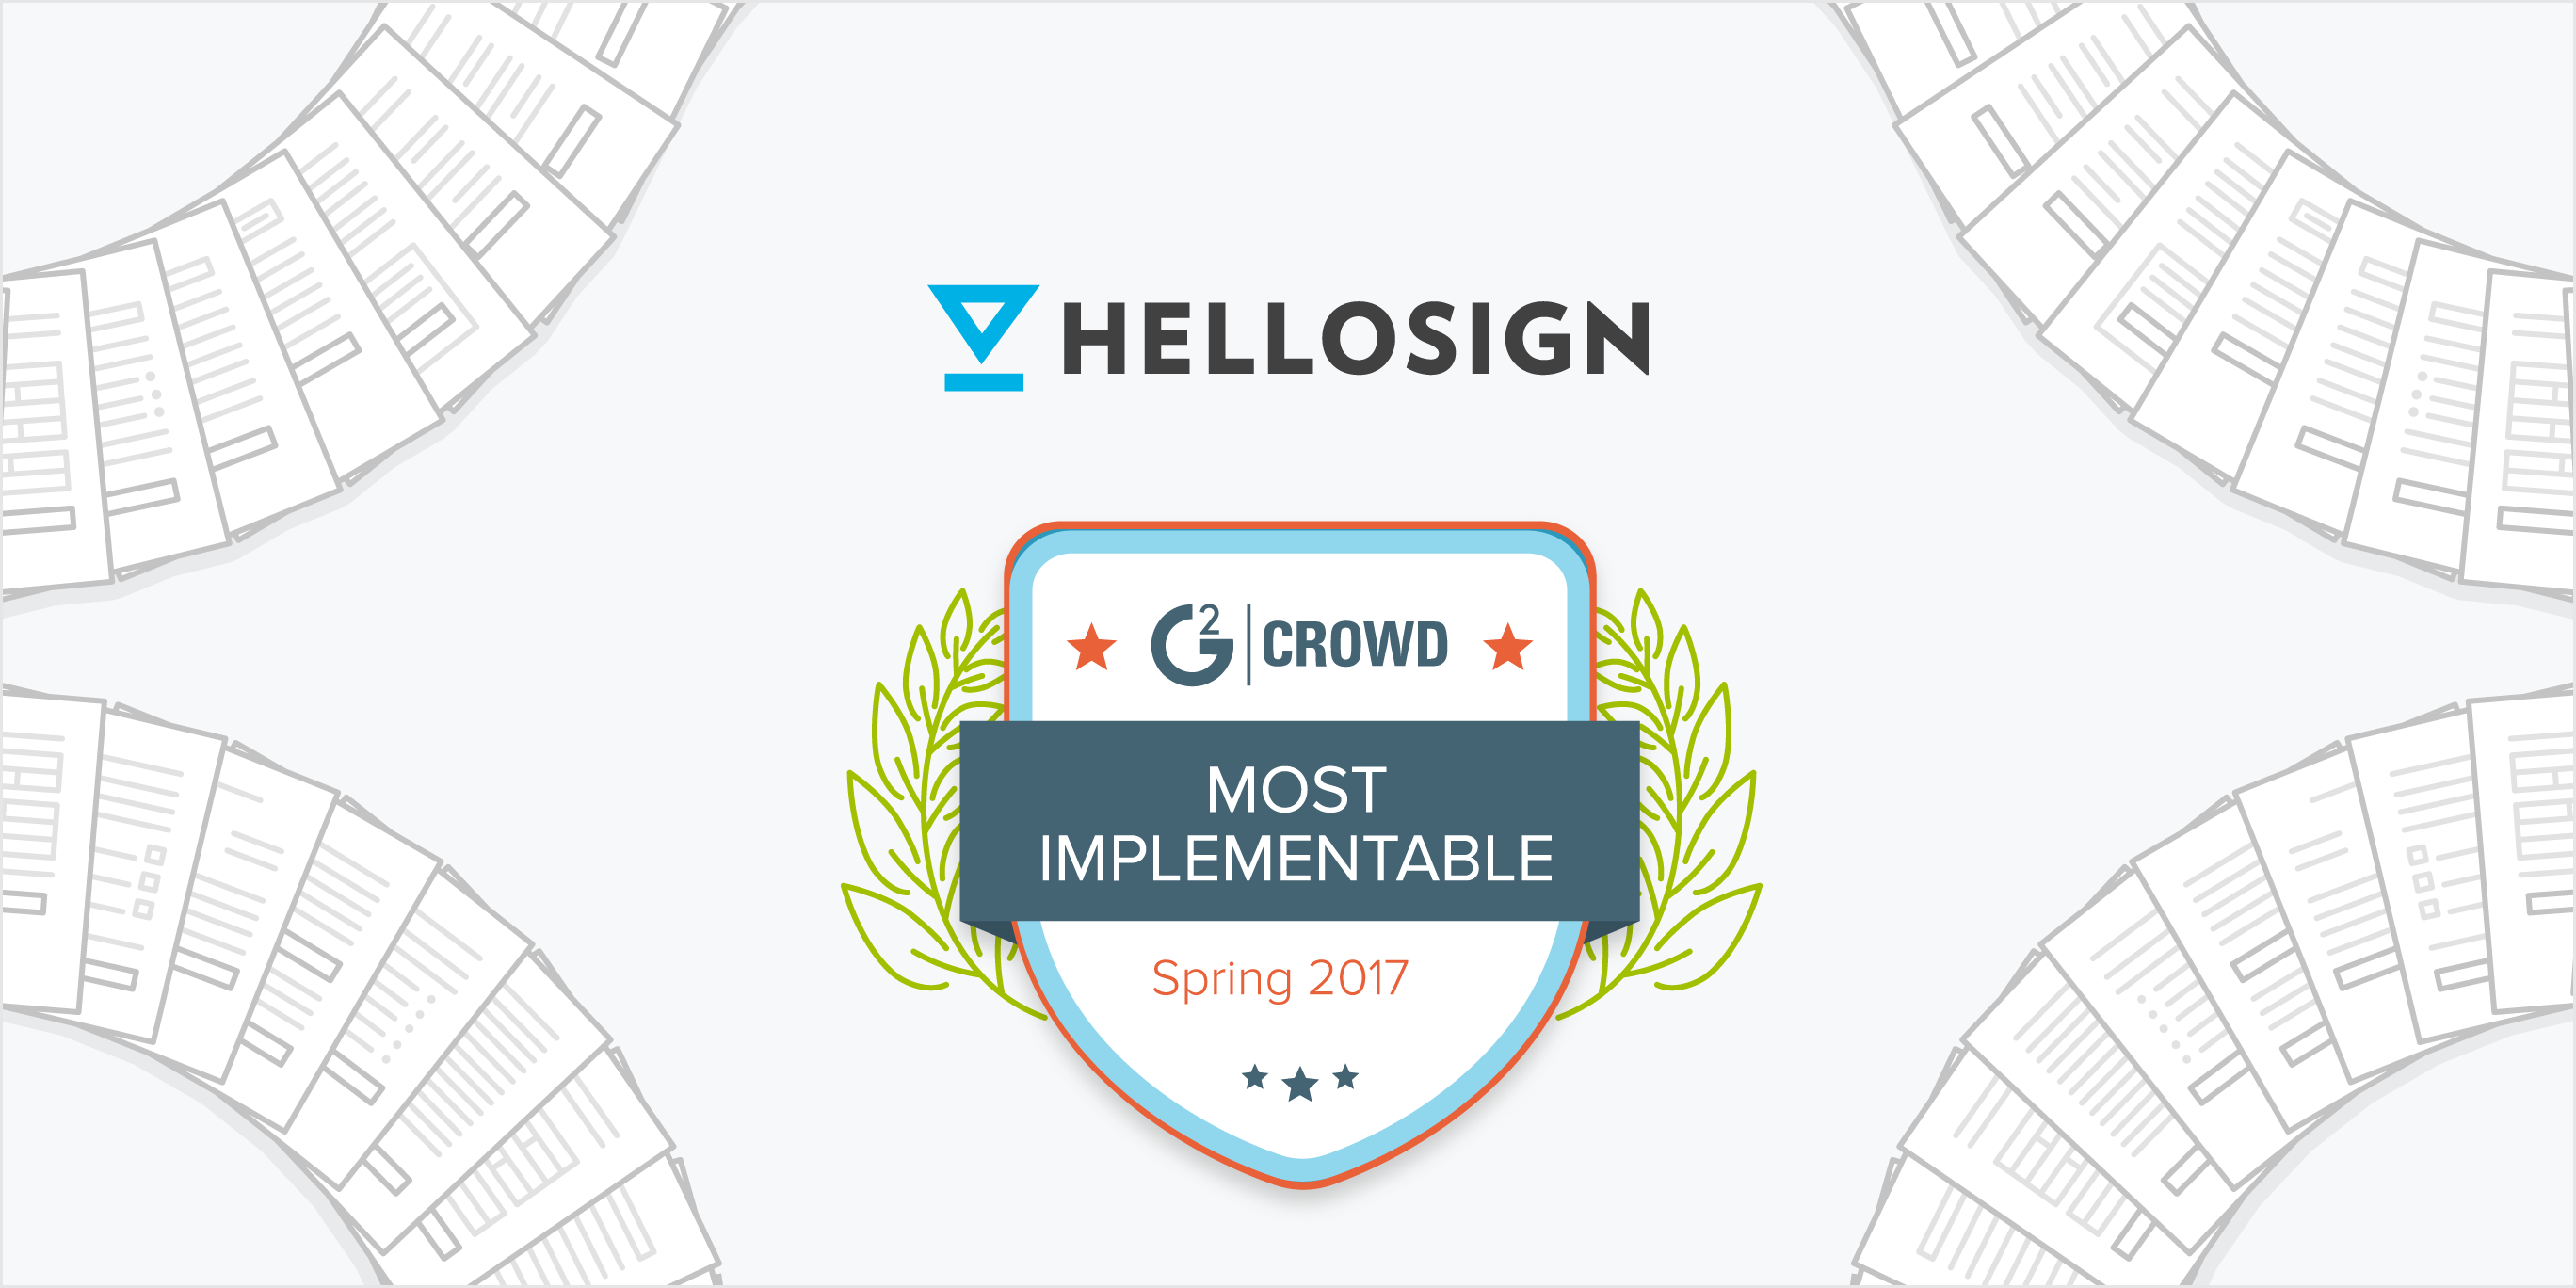 HelloSign Voted #1 for Ease of Implementation on G2 Crowd